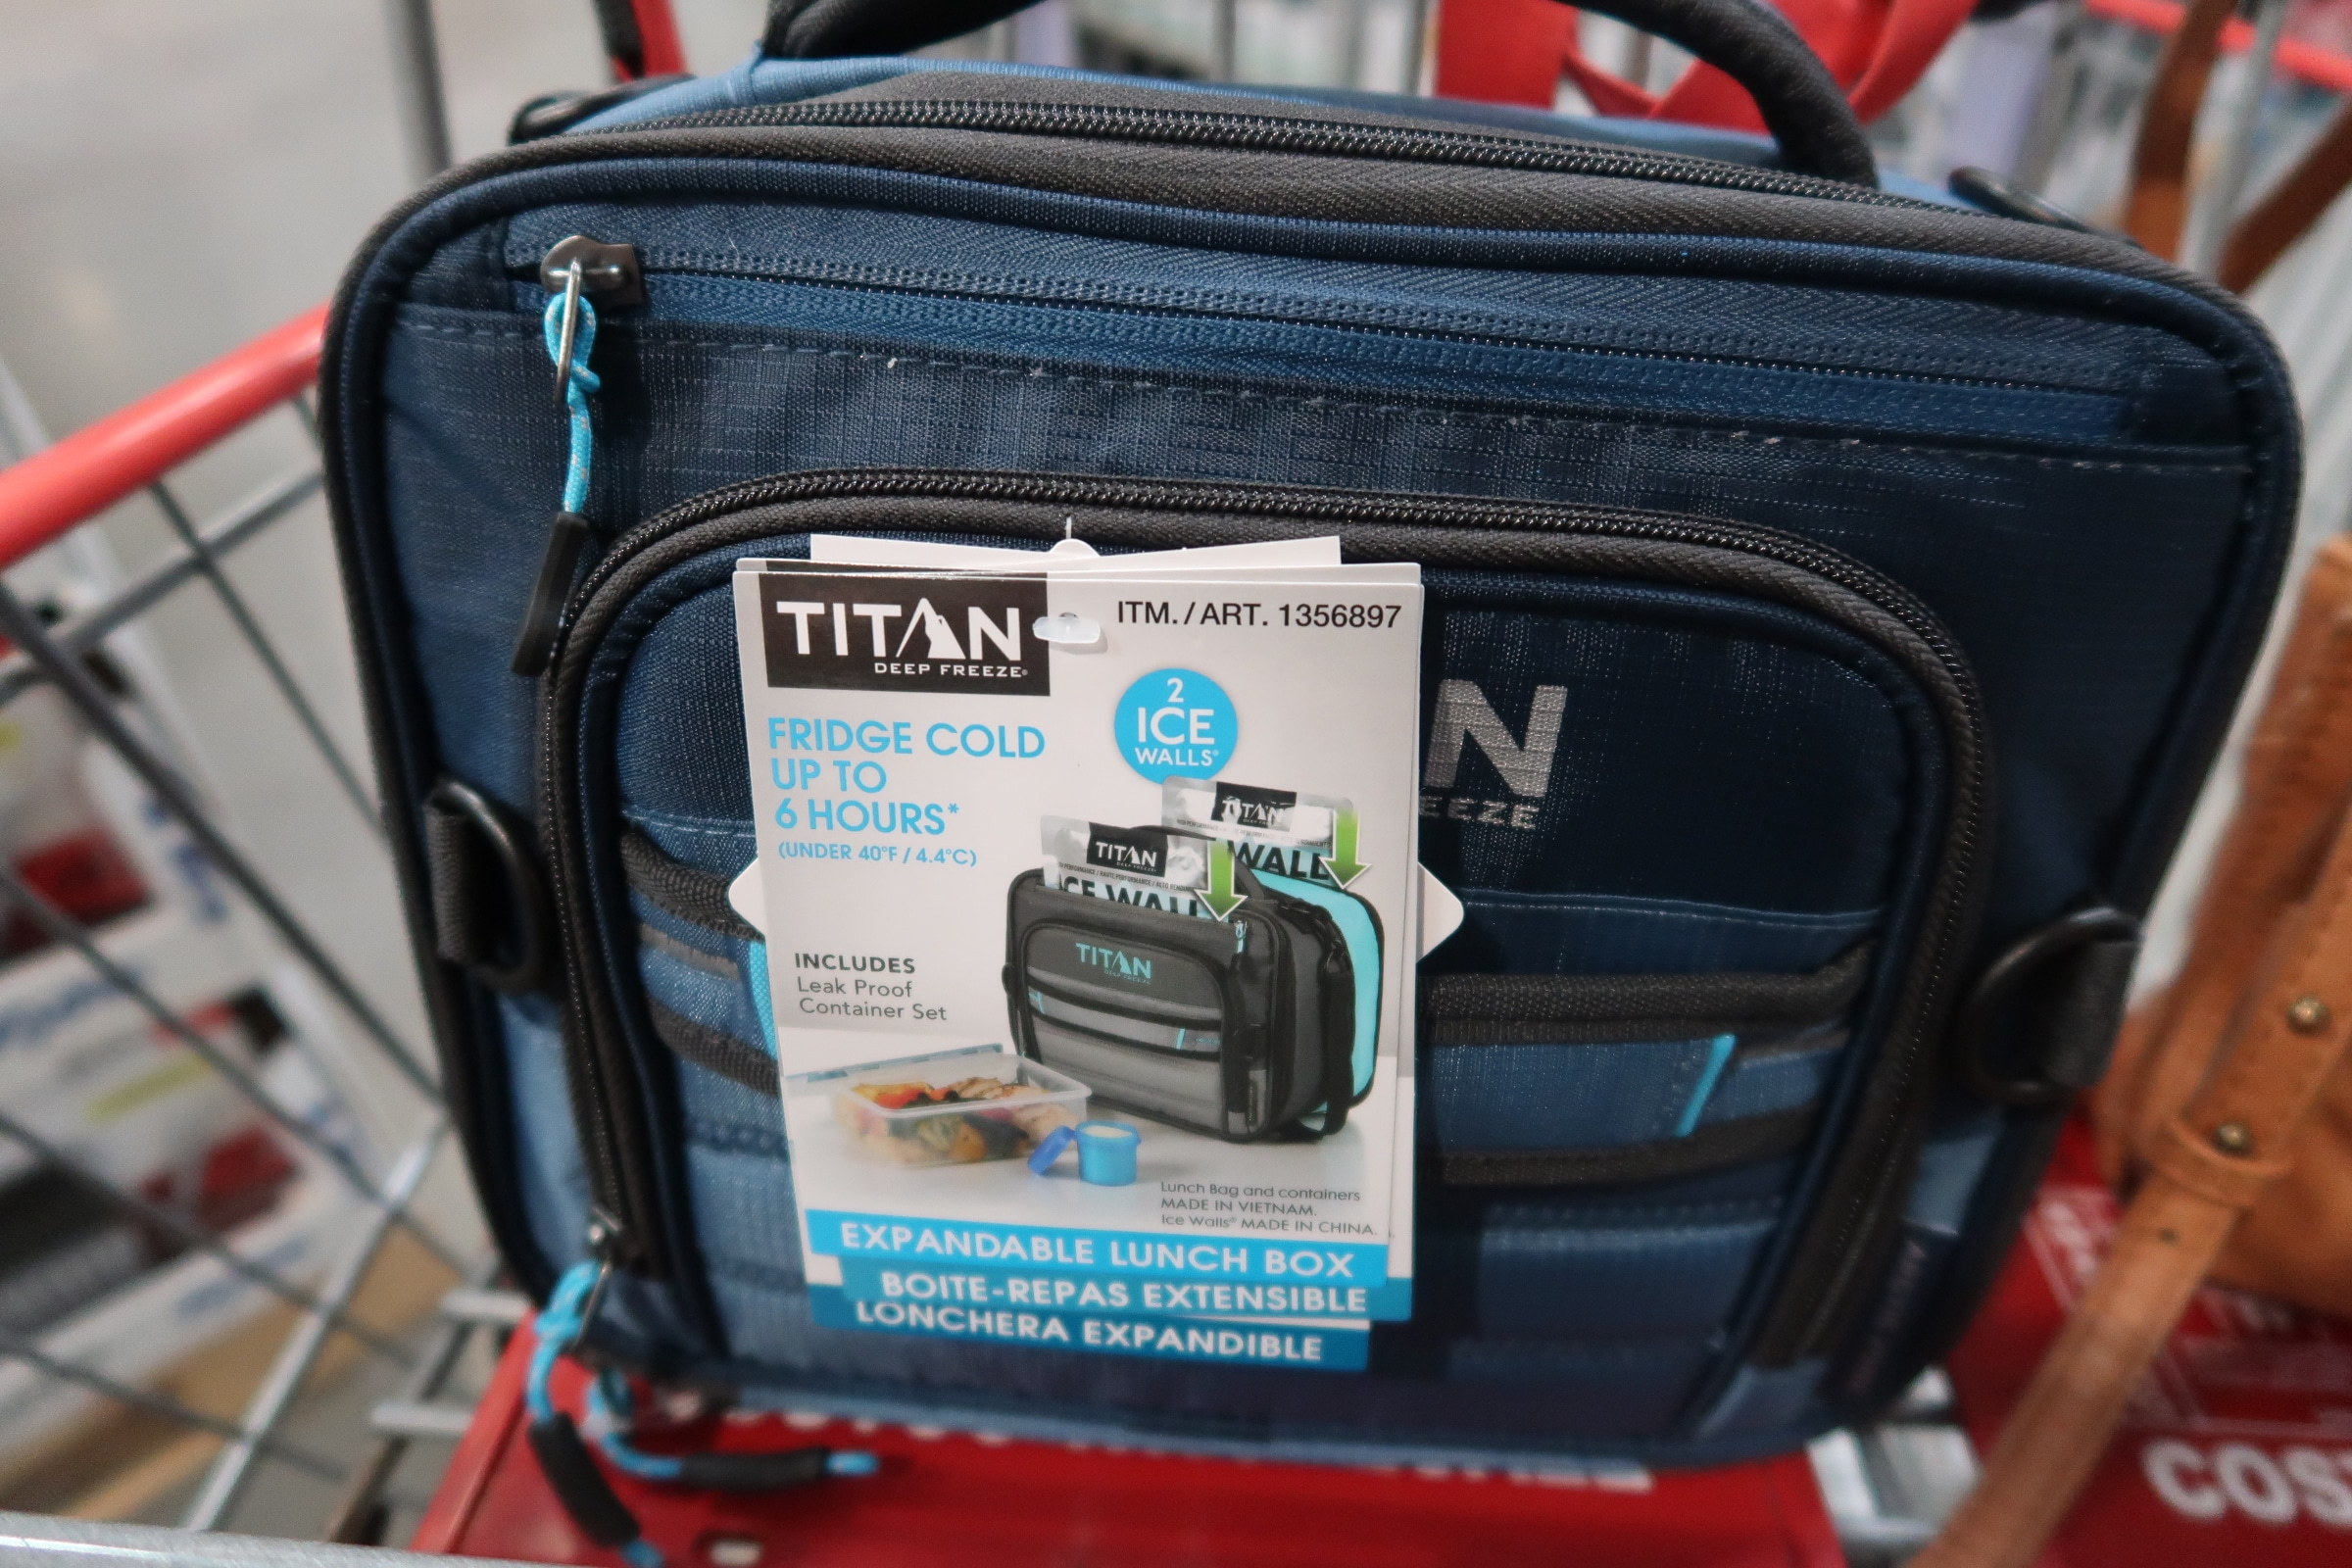 Costco Titan Lunchboxes ONLY $9.99